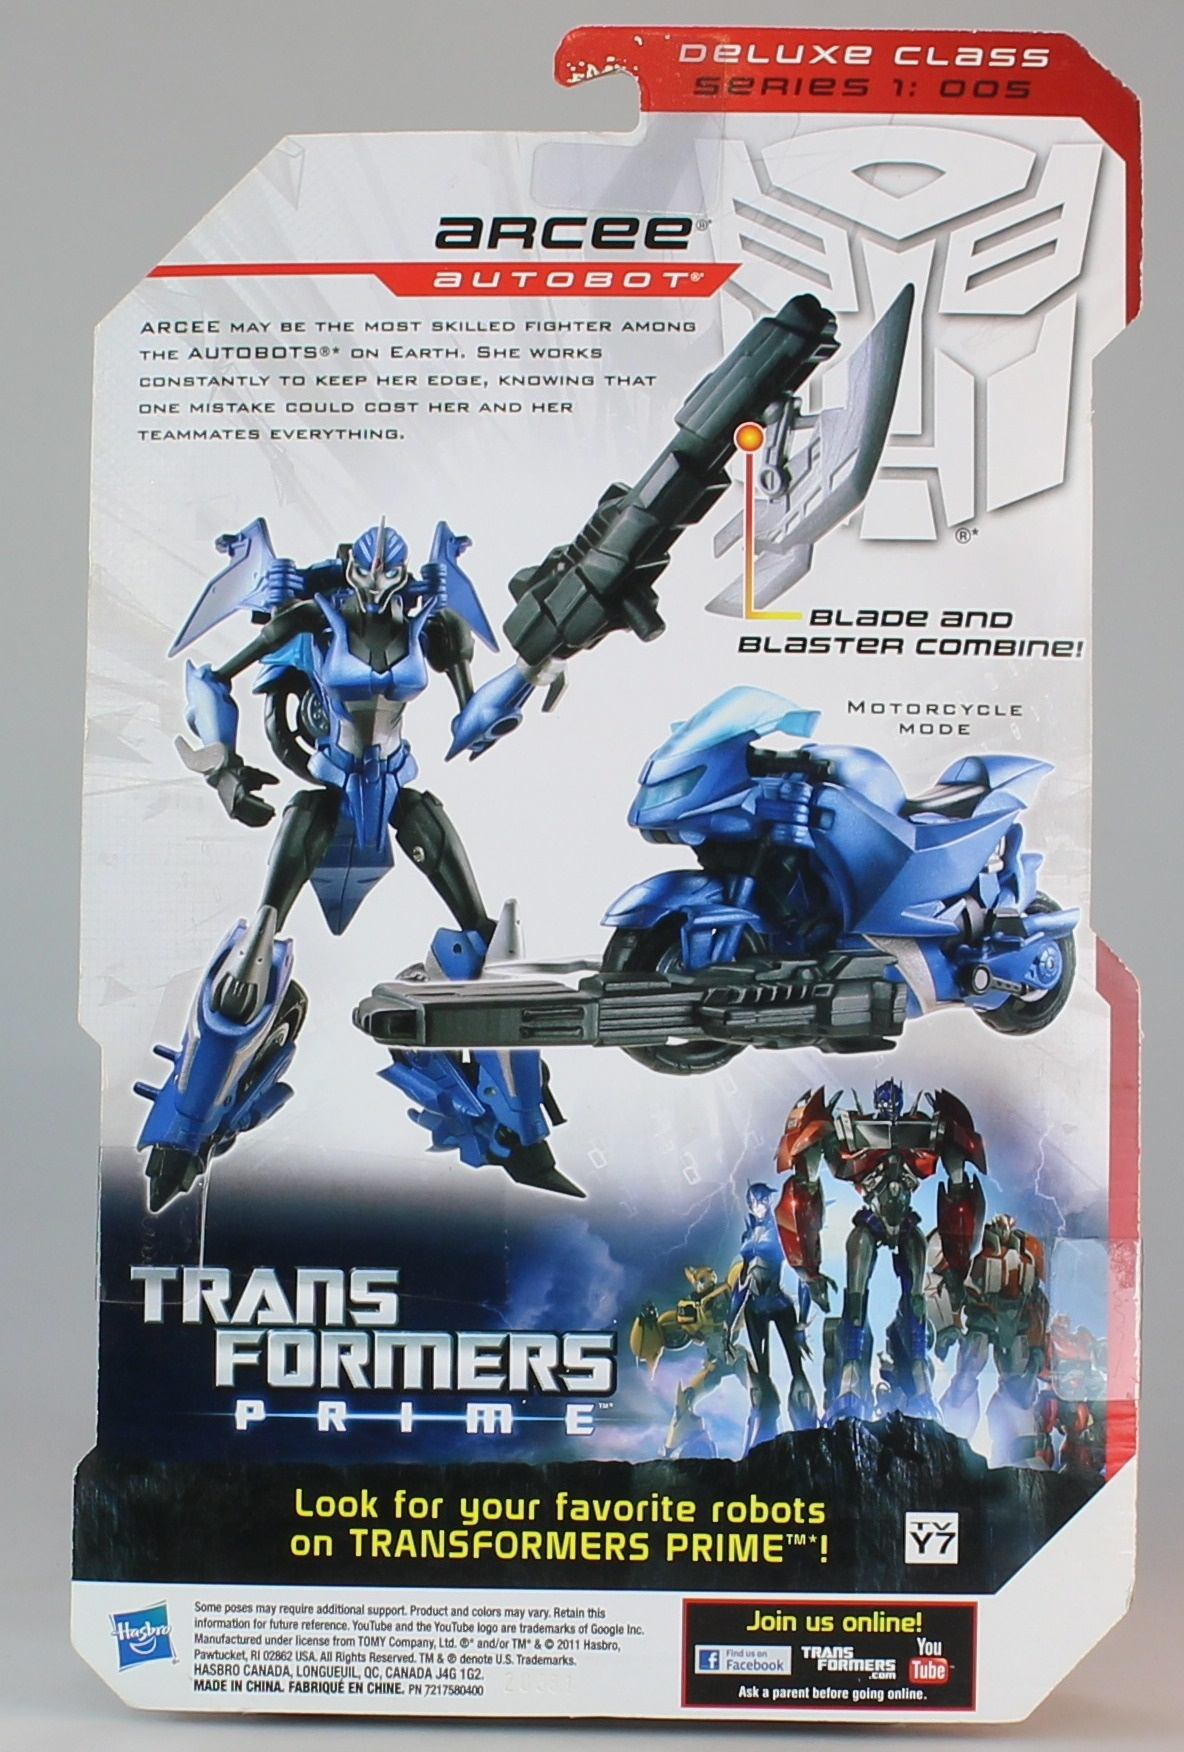 Transformers Prime Robots in Disguise Deluxe Class Series 1 Action Figure -  Arcee